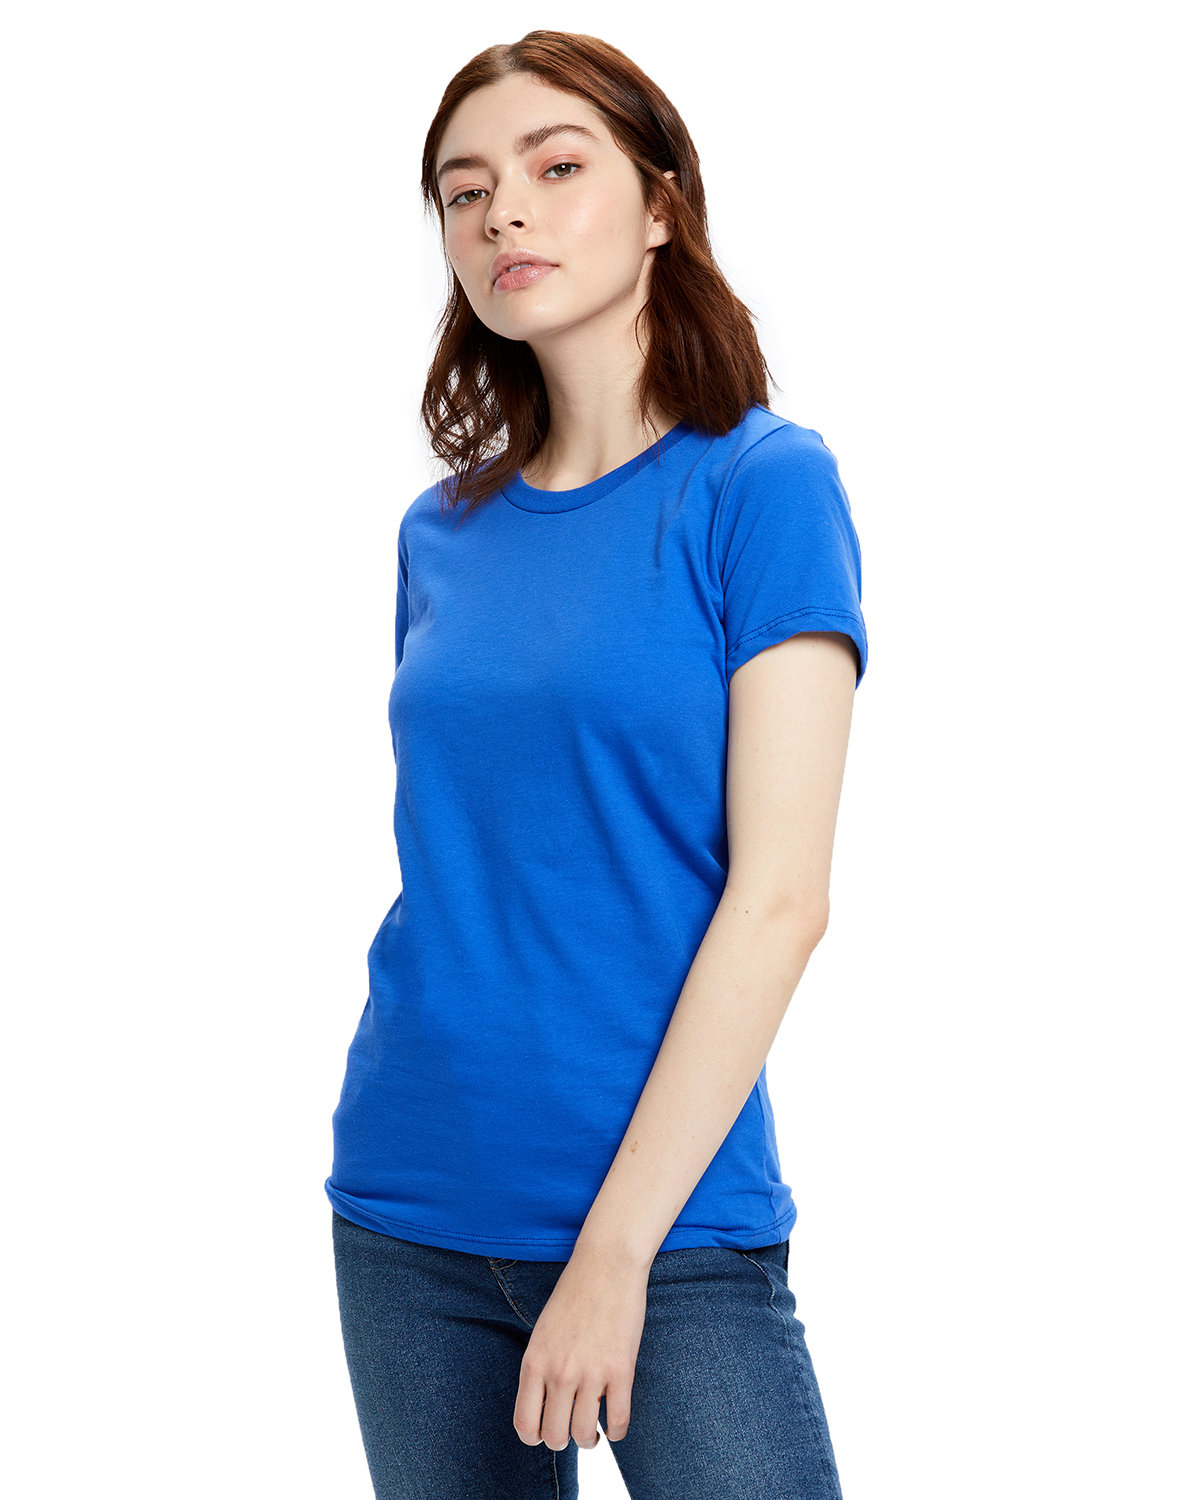 US Blanks Ladies' Made in USA Short Sleeve Crew T-Shirt ROYAL BLUE